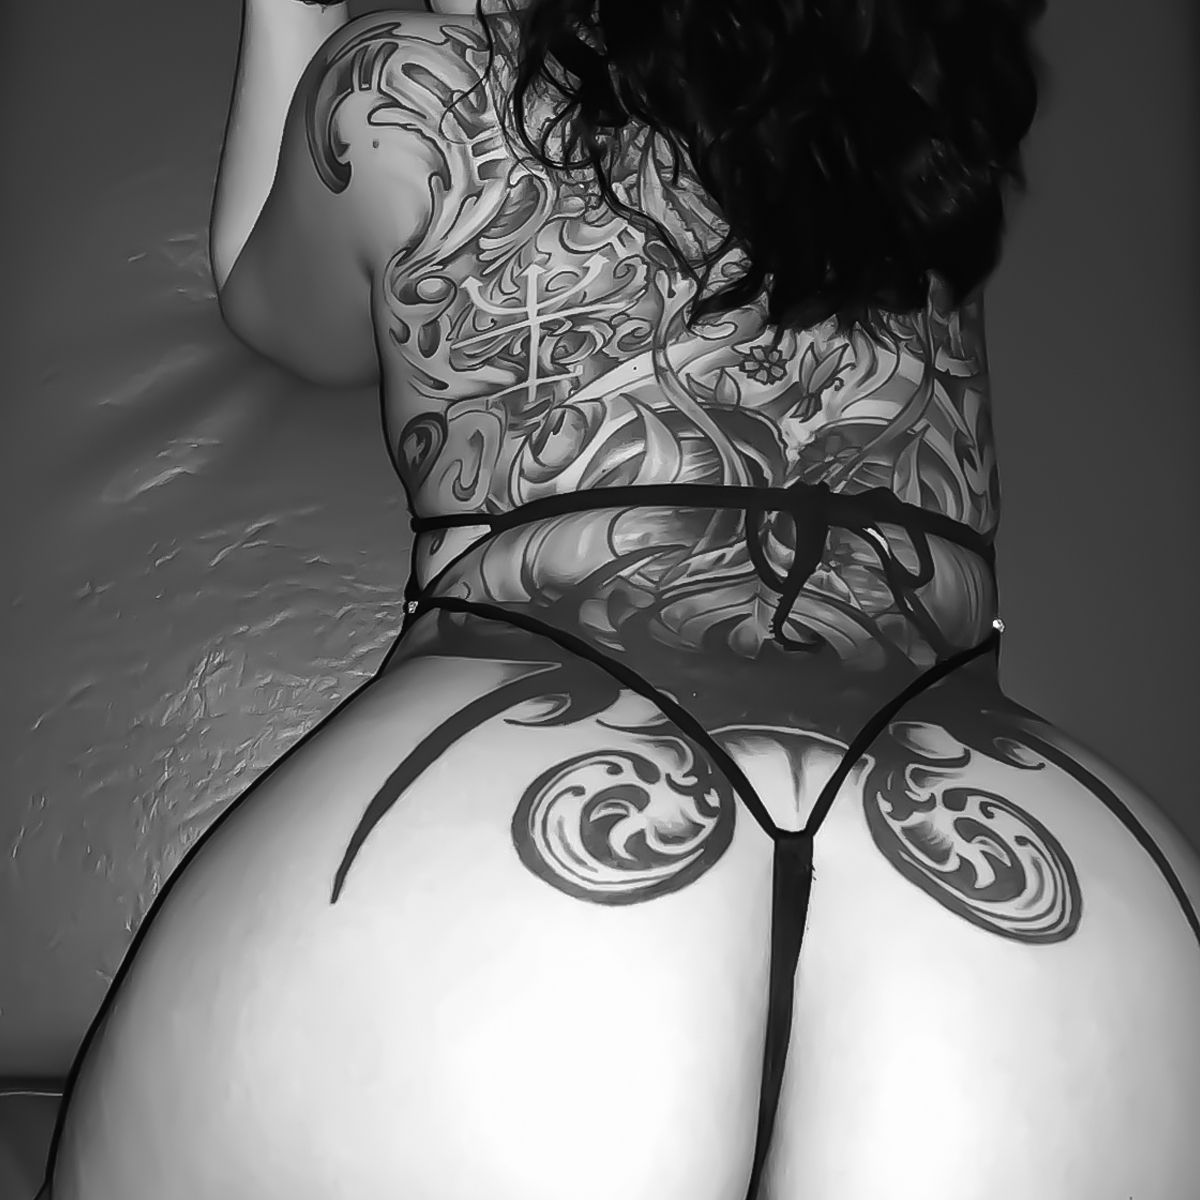 Come check out the best buns in Tennessee! Spend your Friday with ASPEN, JASMINE, KHALEESI, RAYNE, MICHELLE, NATALIE, ANGEL, NIRVANA, RILEY, COCO, DIAMOND, SUMMER 😘 . . . #bestbooty #betteronbuns #buns #booty #datass #themousesear #knoxville #stripjoint